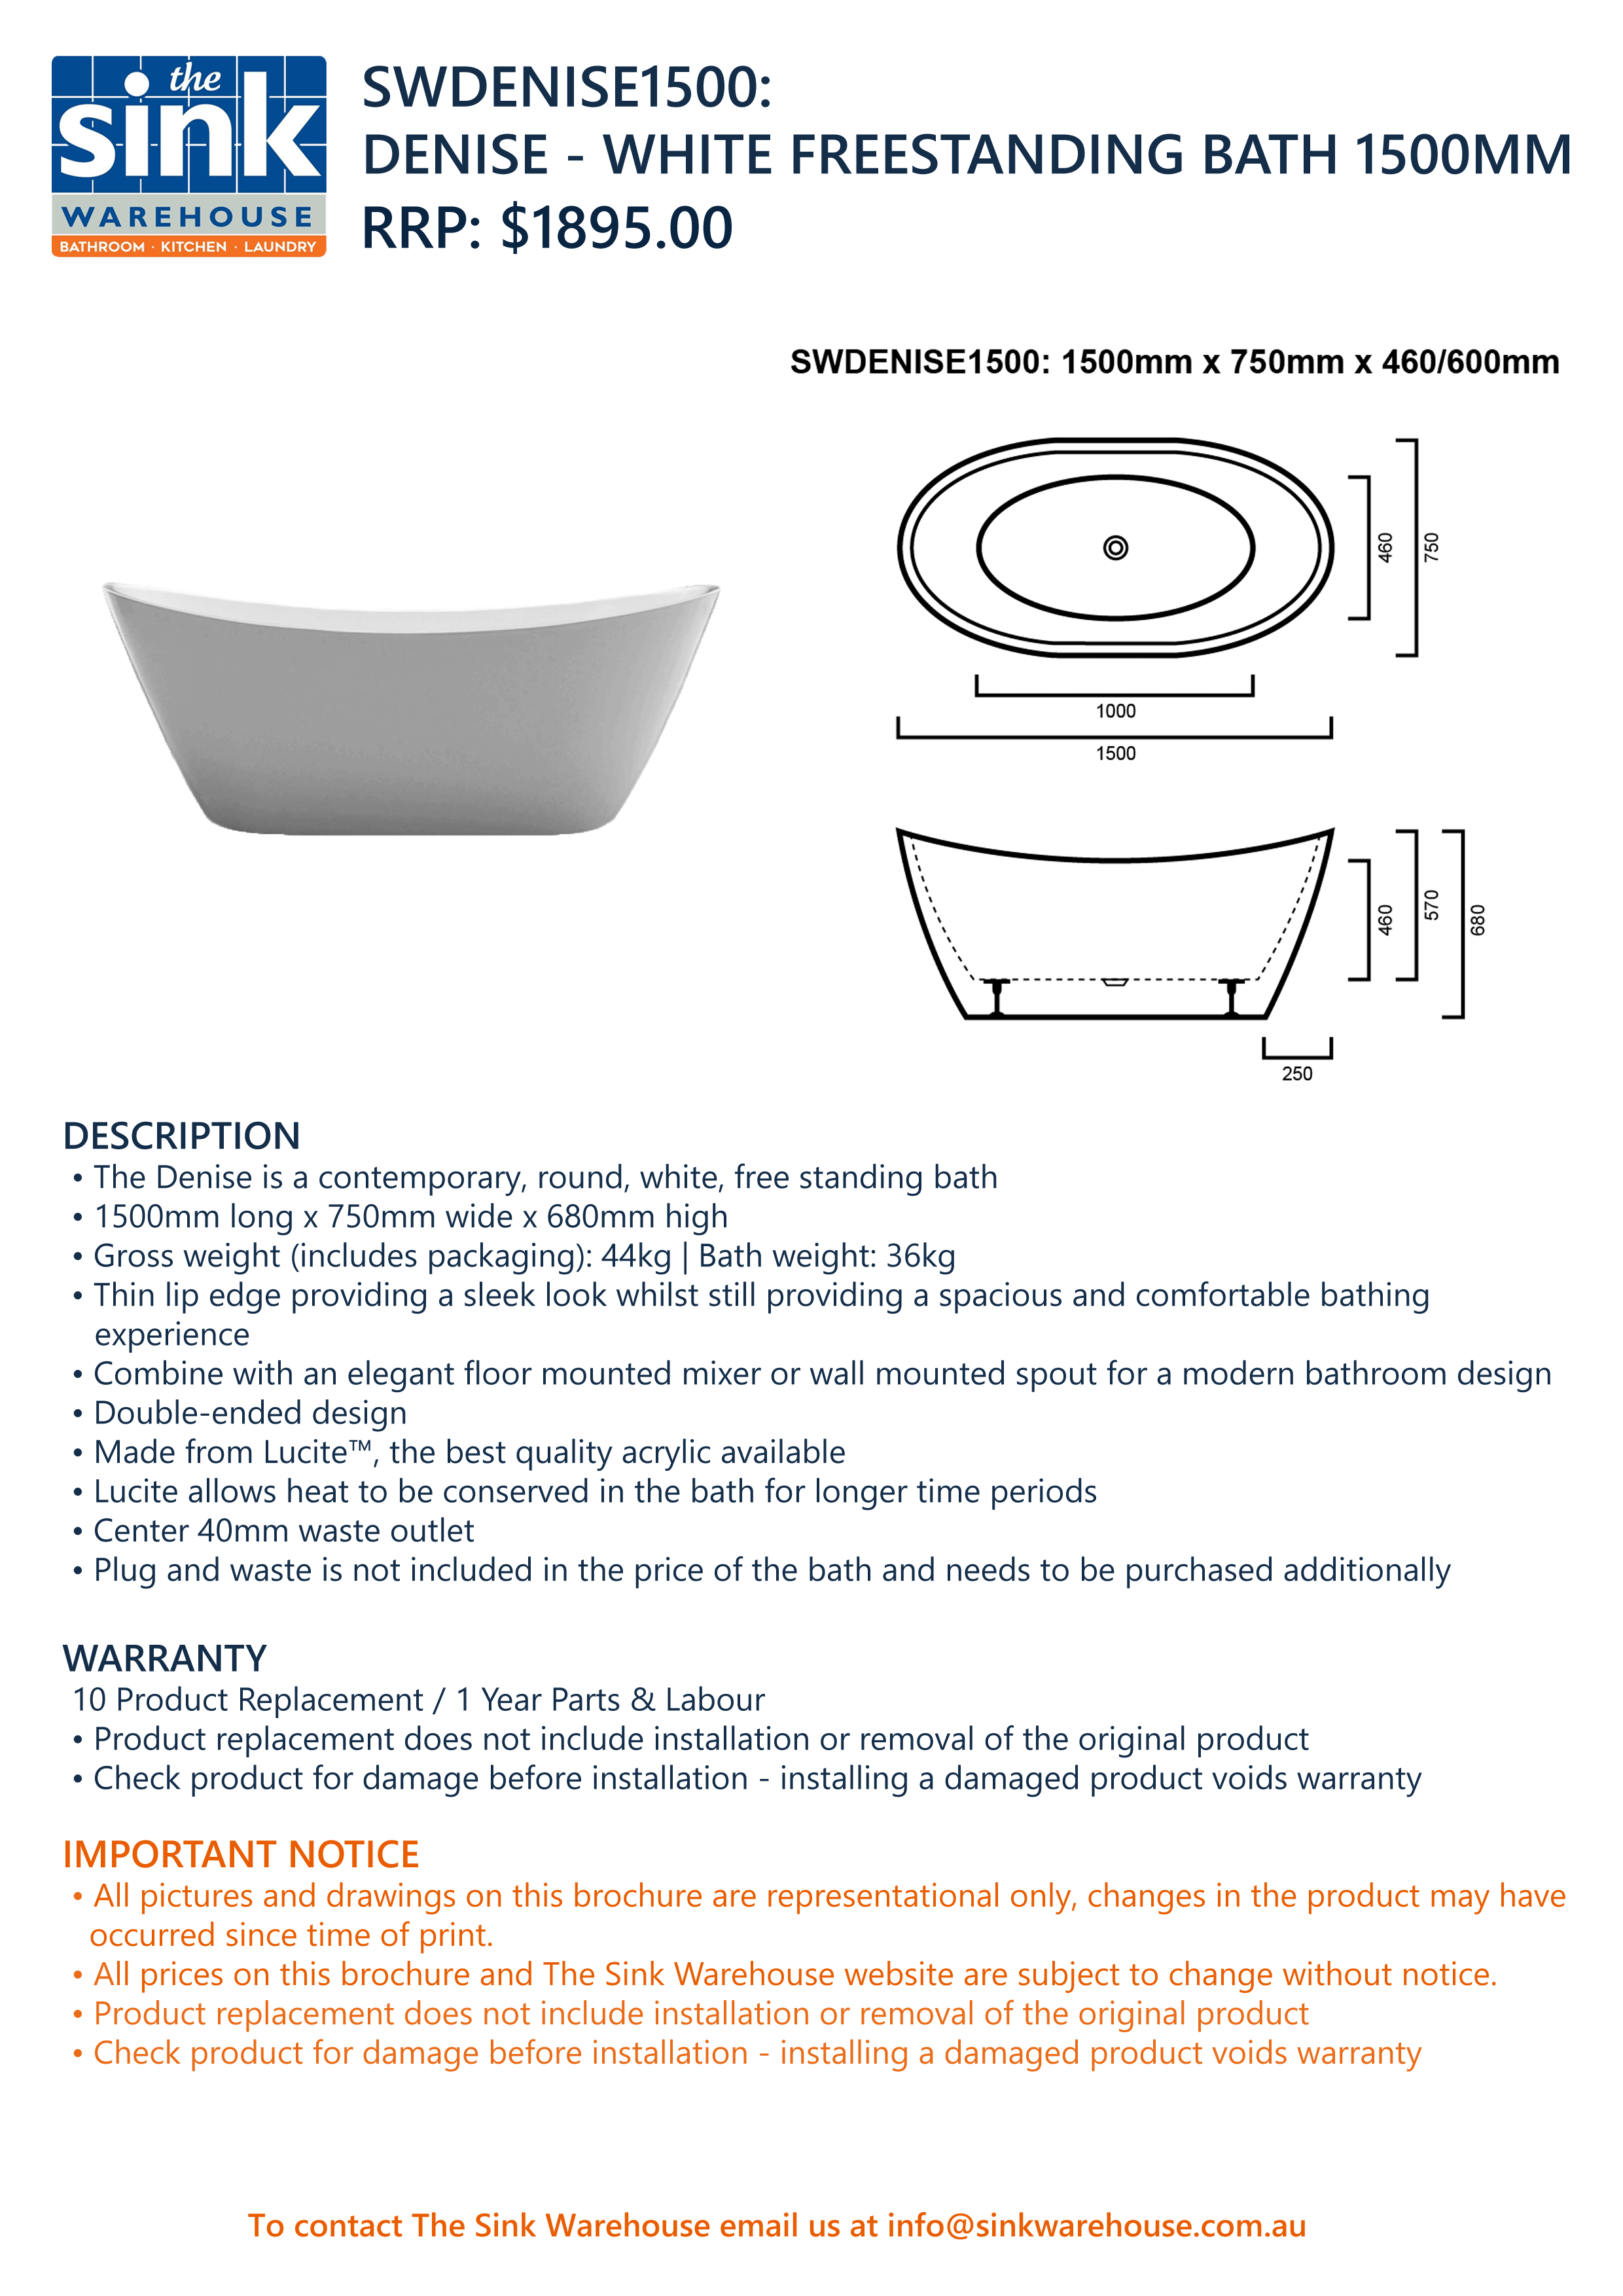 swdenise1500-product-spec-sheet.png